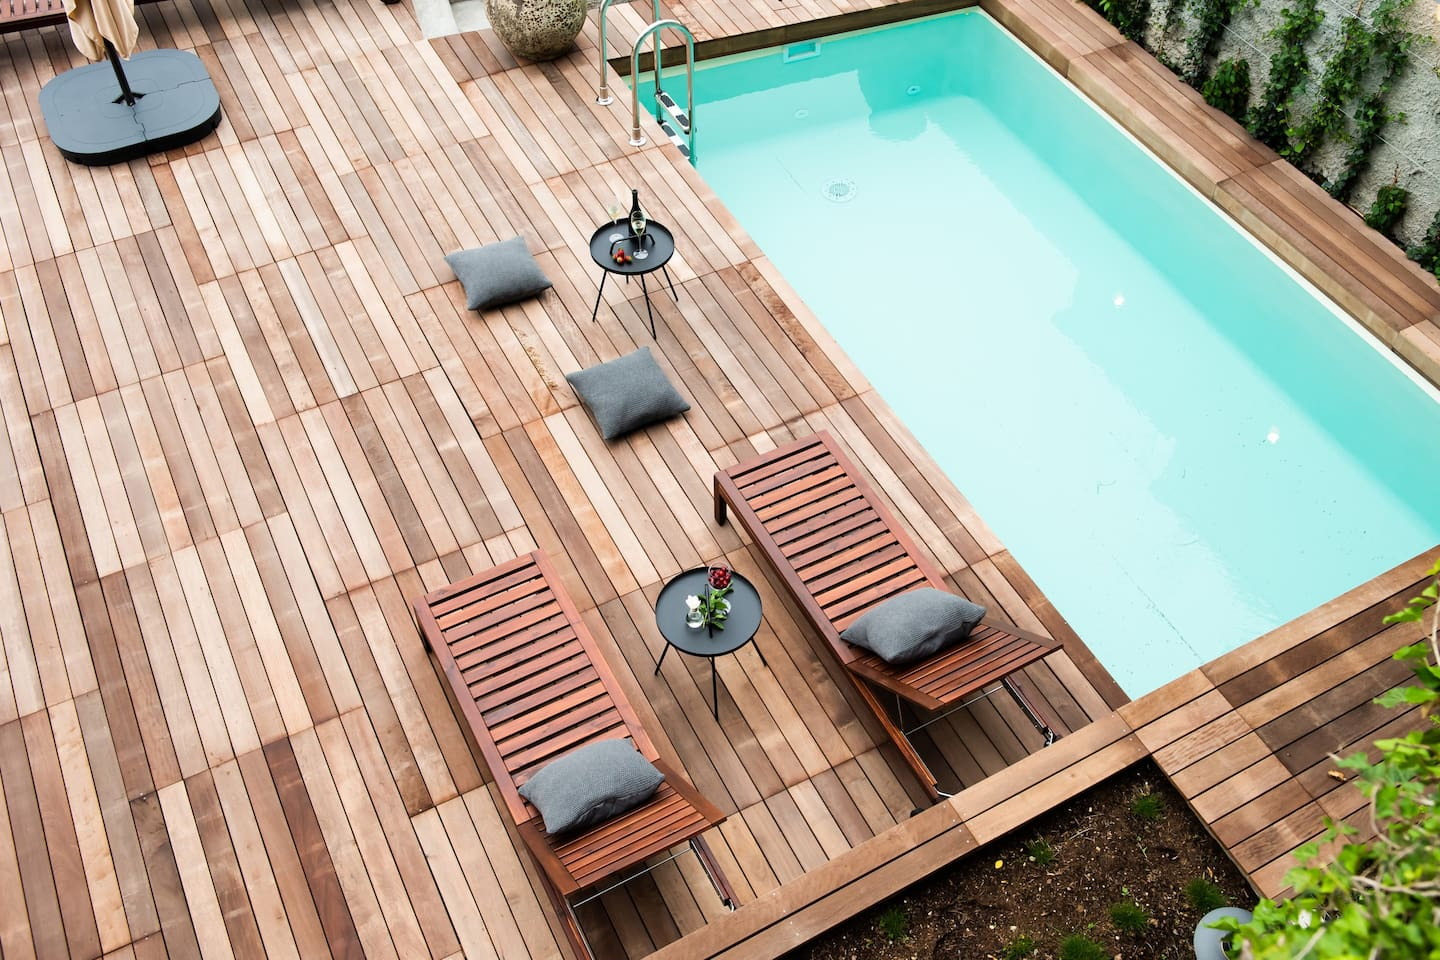 Relax on the pool terrace with deck chairs